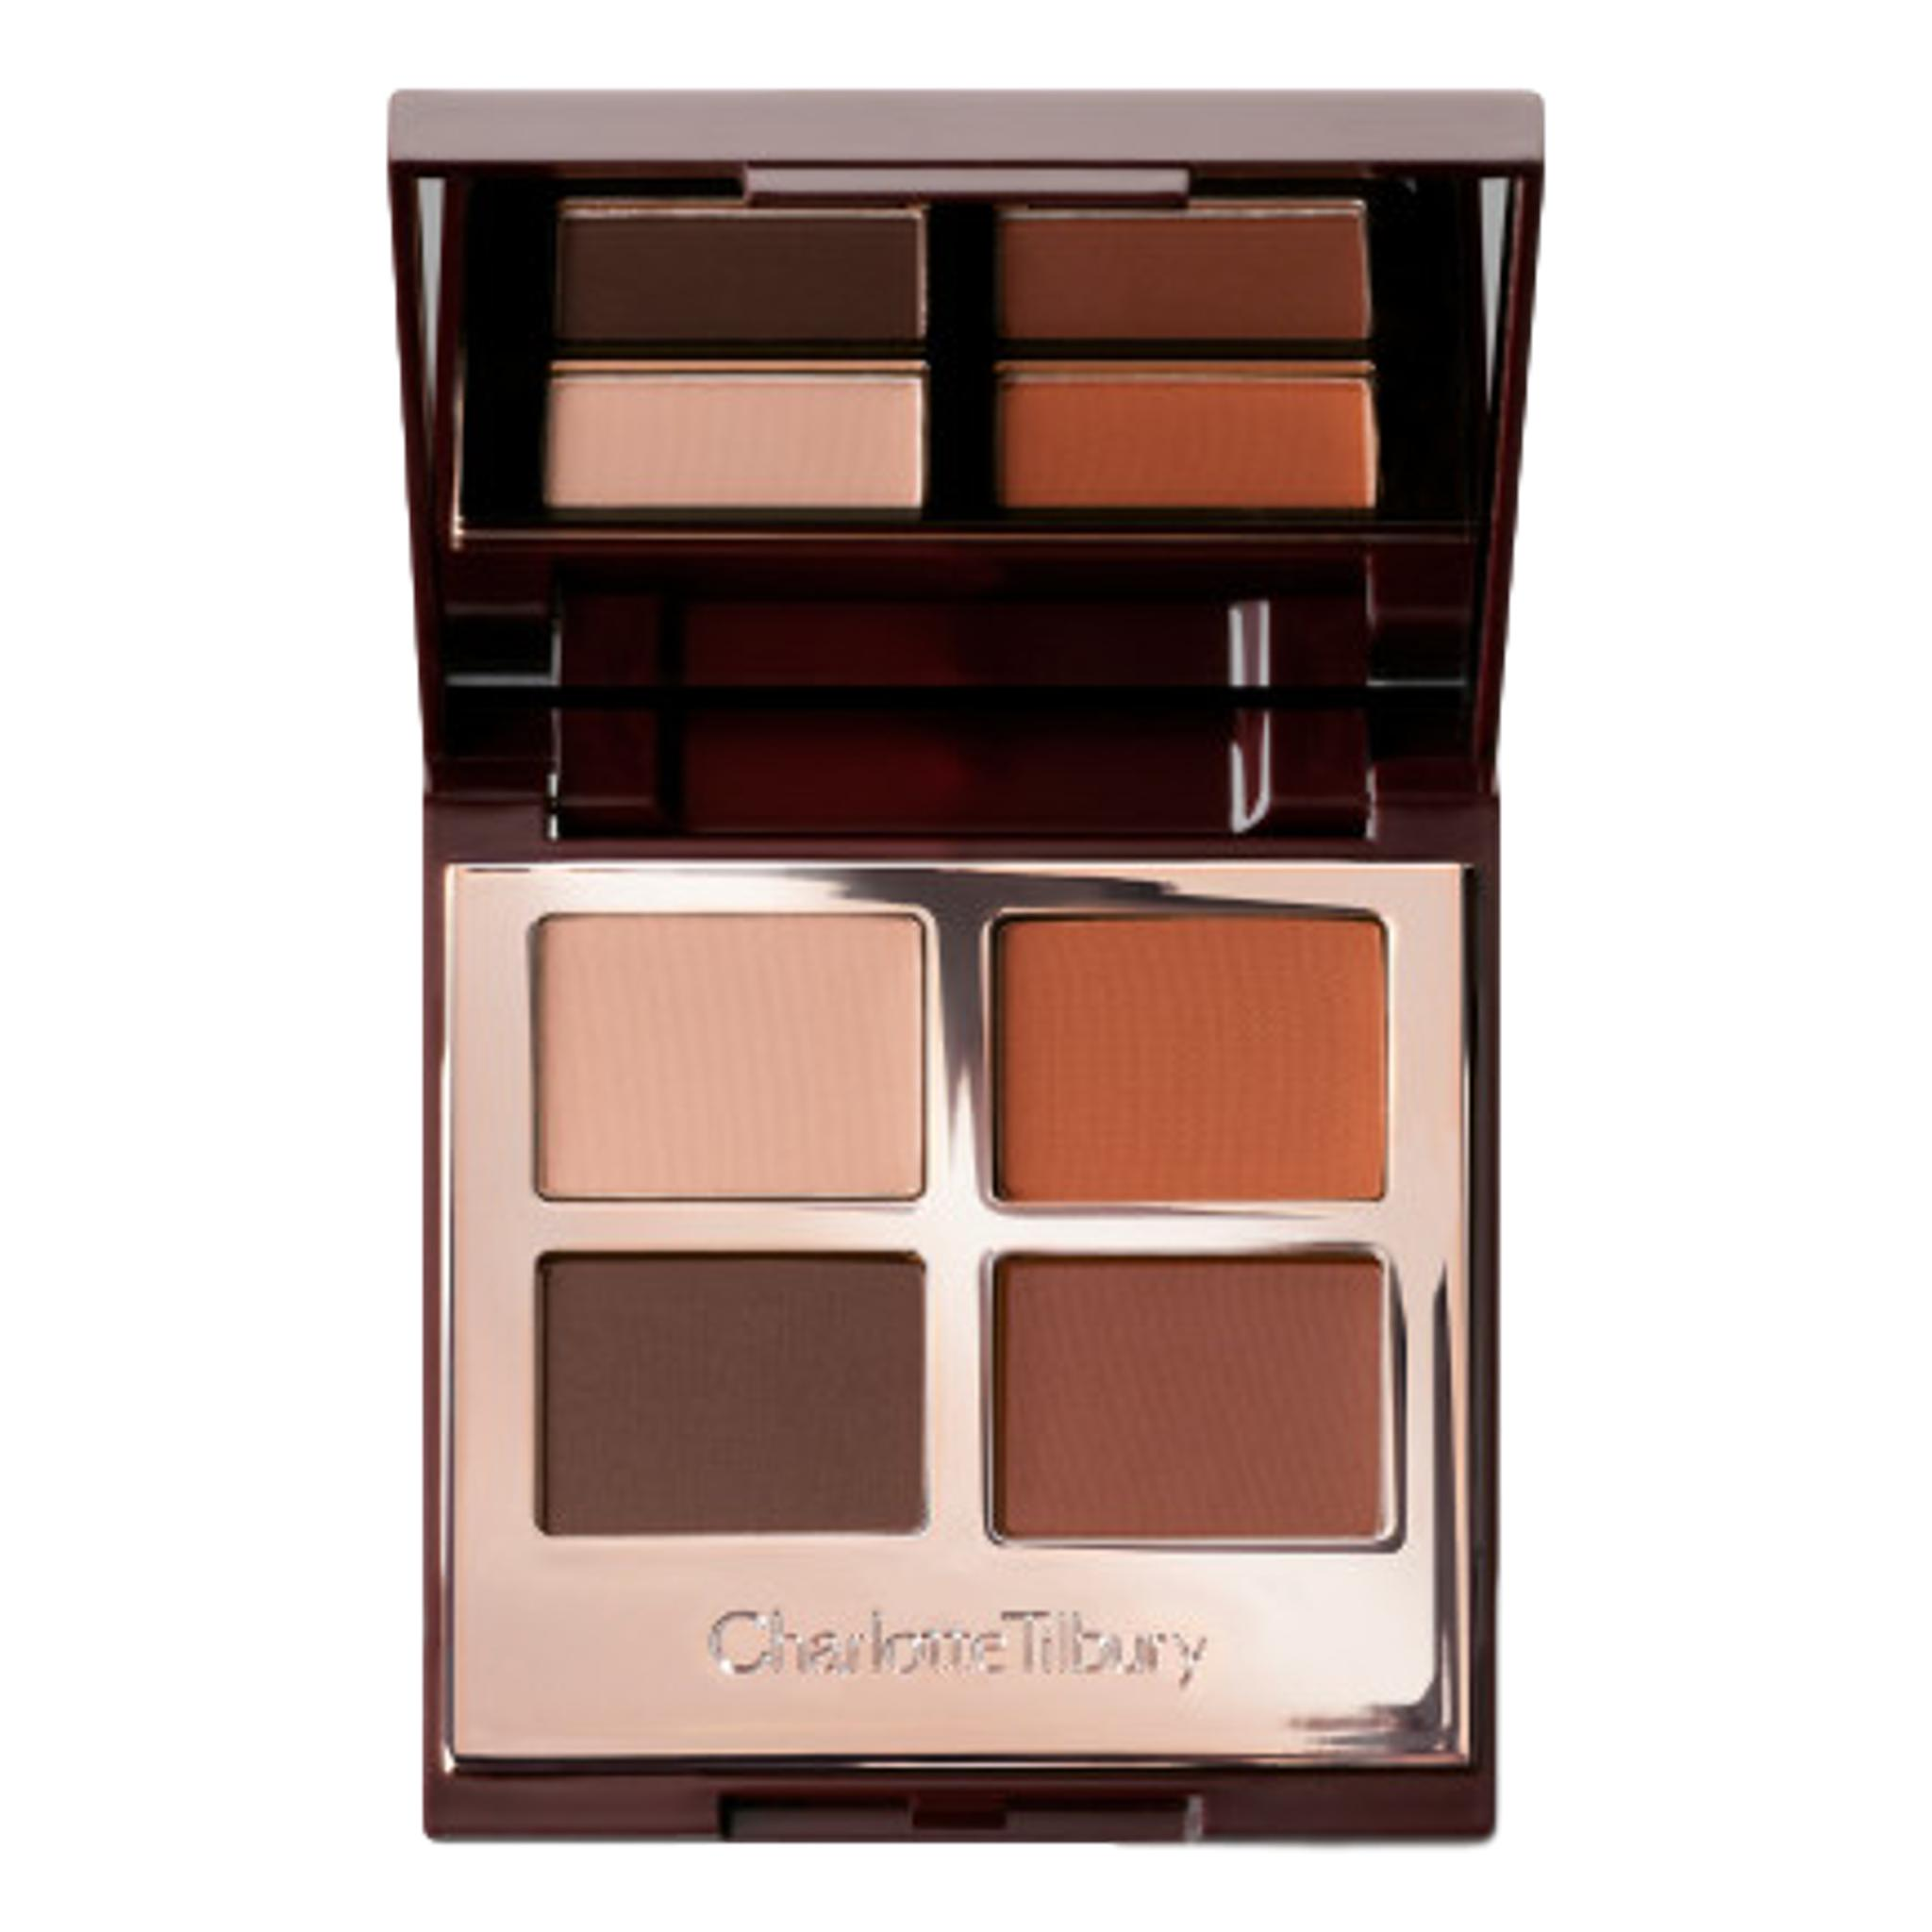 Charlotte Tilbury Luxury Eyeshadow Palette - Desert Haze, eyeshadow palette, London Loves Beauty